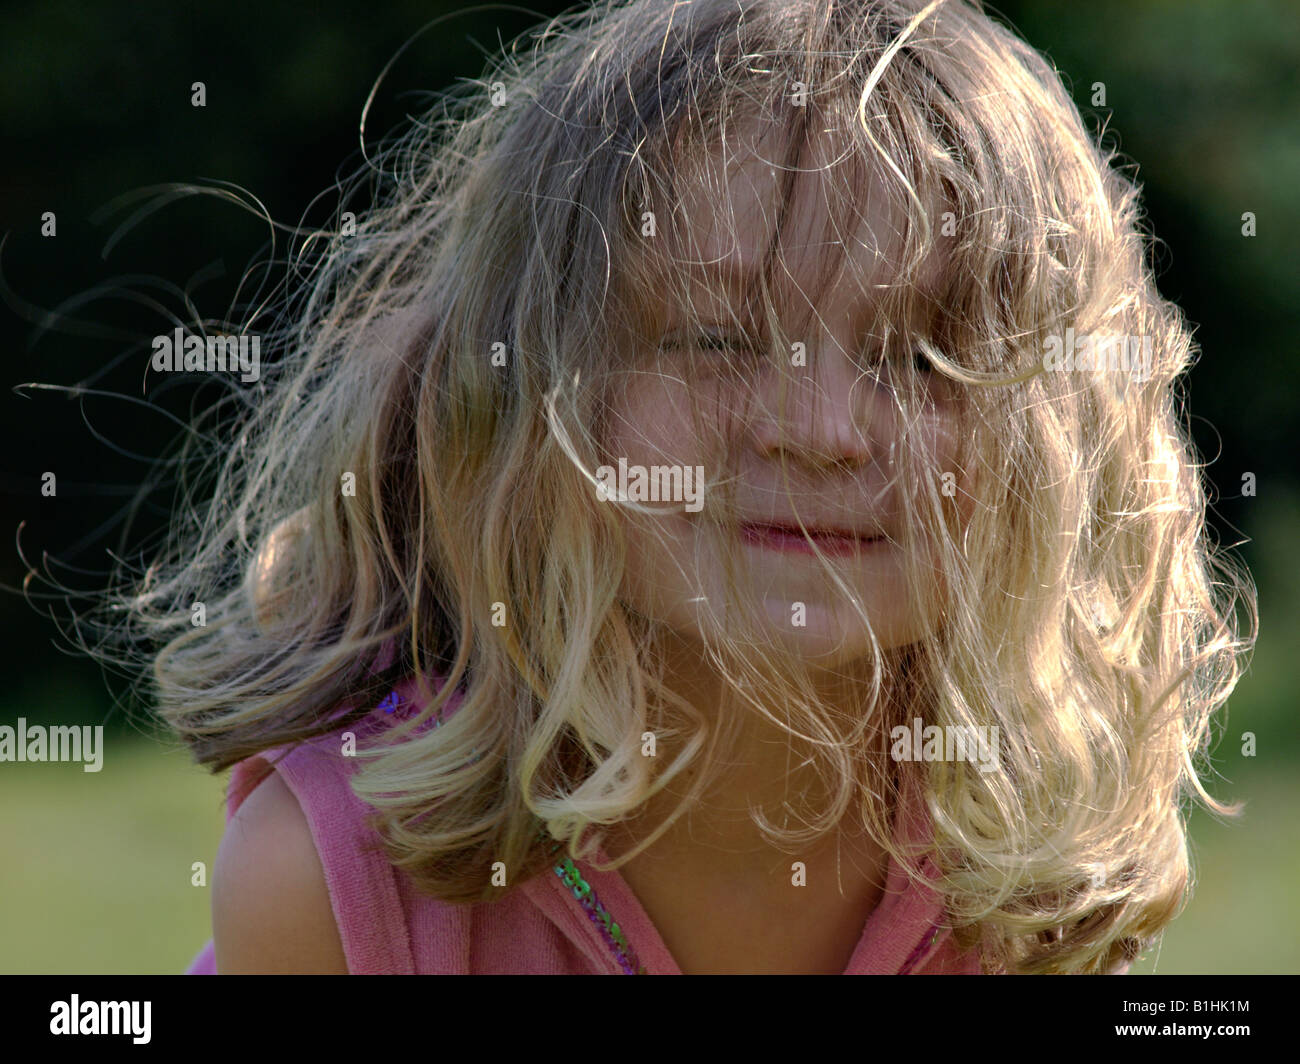 Young Female Child Bad Hair Day Stock Photo 18213152 Alamy